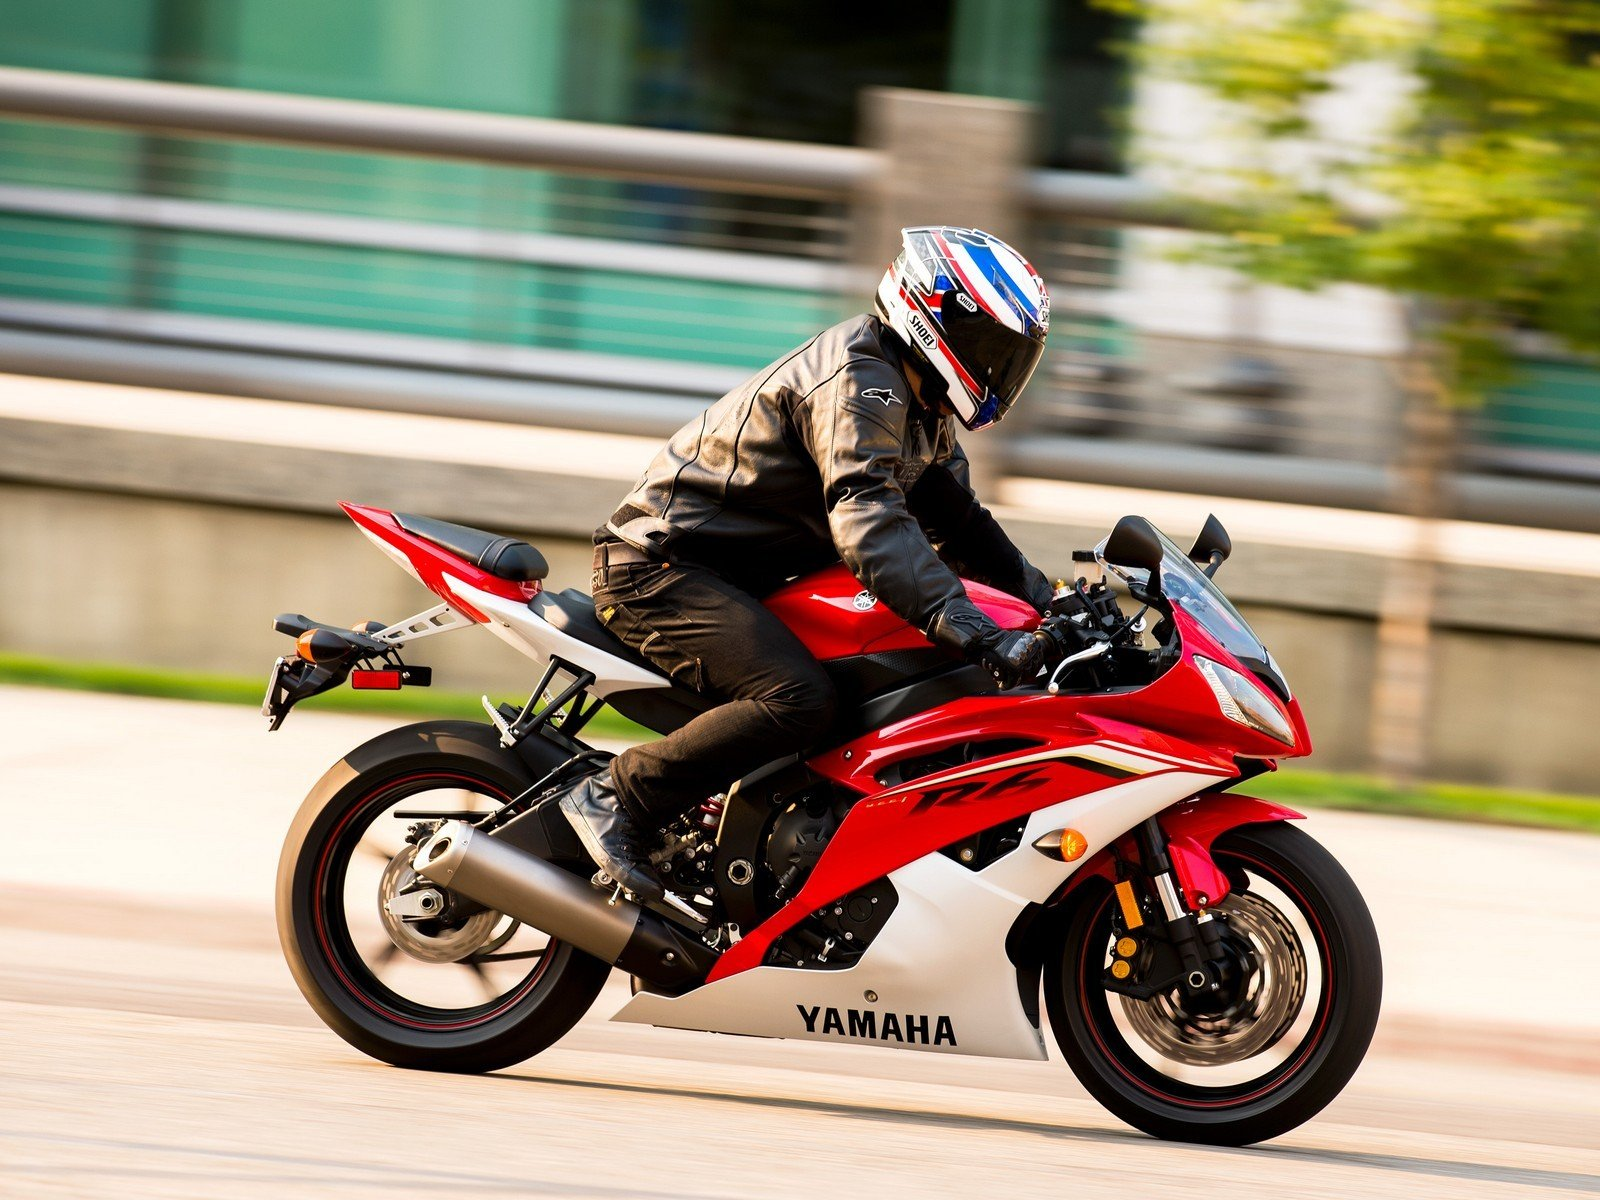 Yamaha Yzf r6 2013 Top Speed 2013 Yamaha Yzf r6 Picture